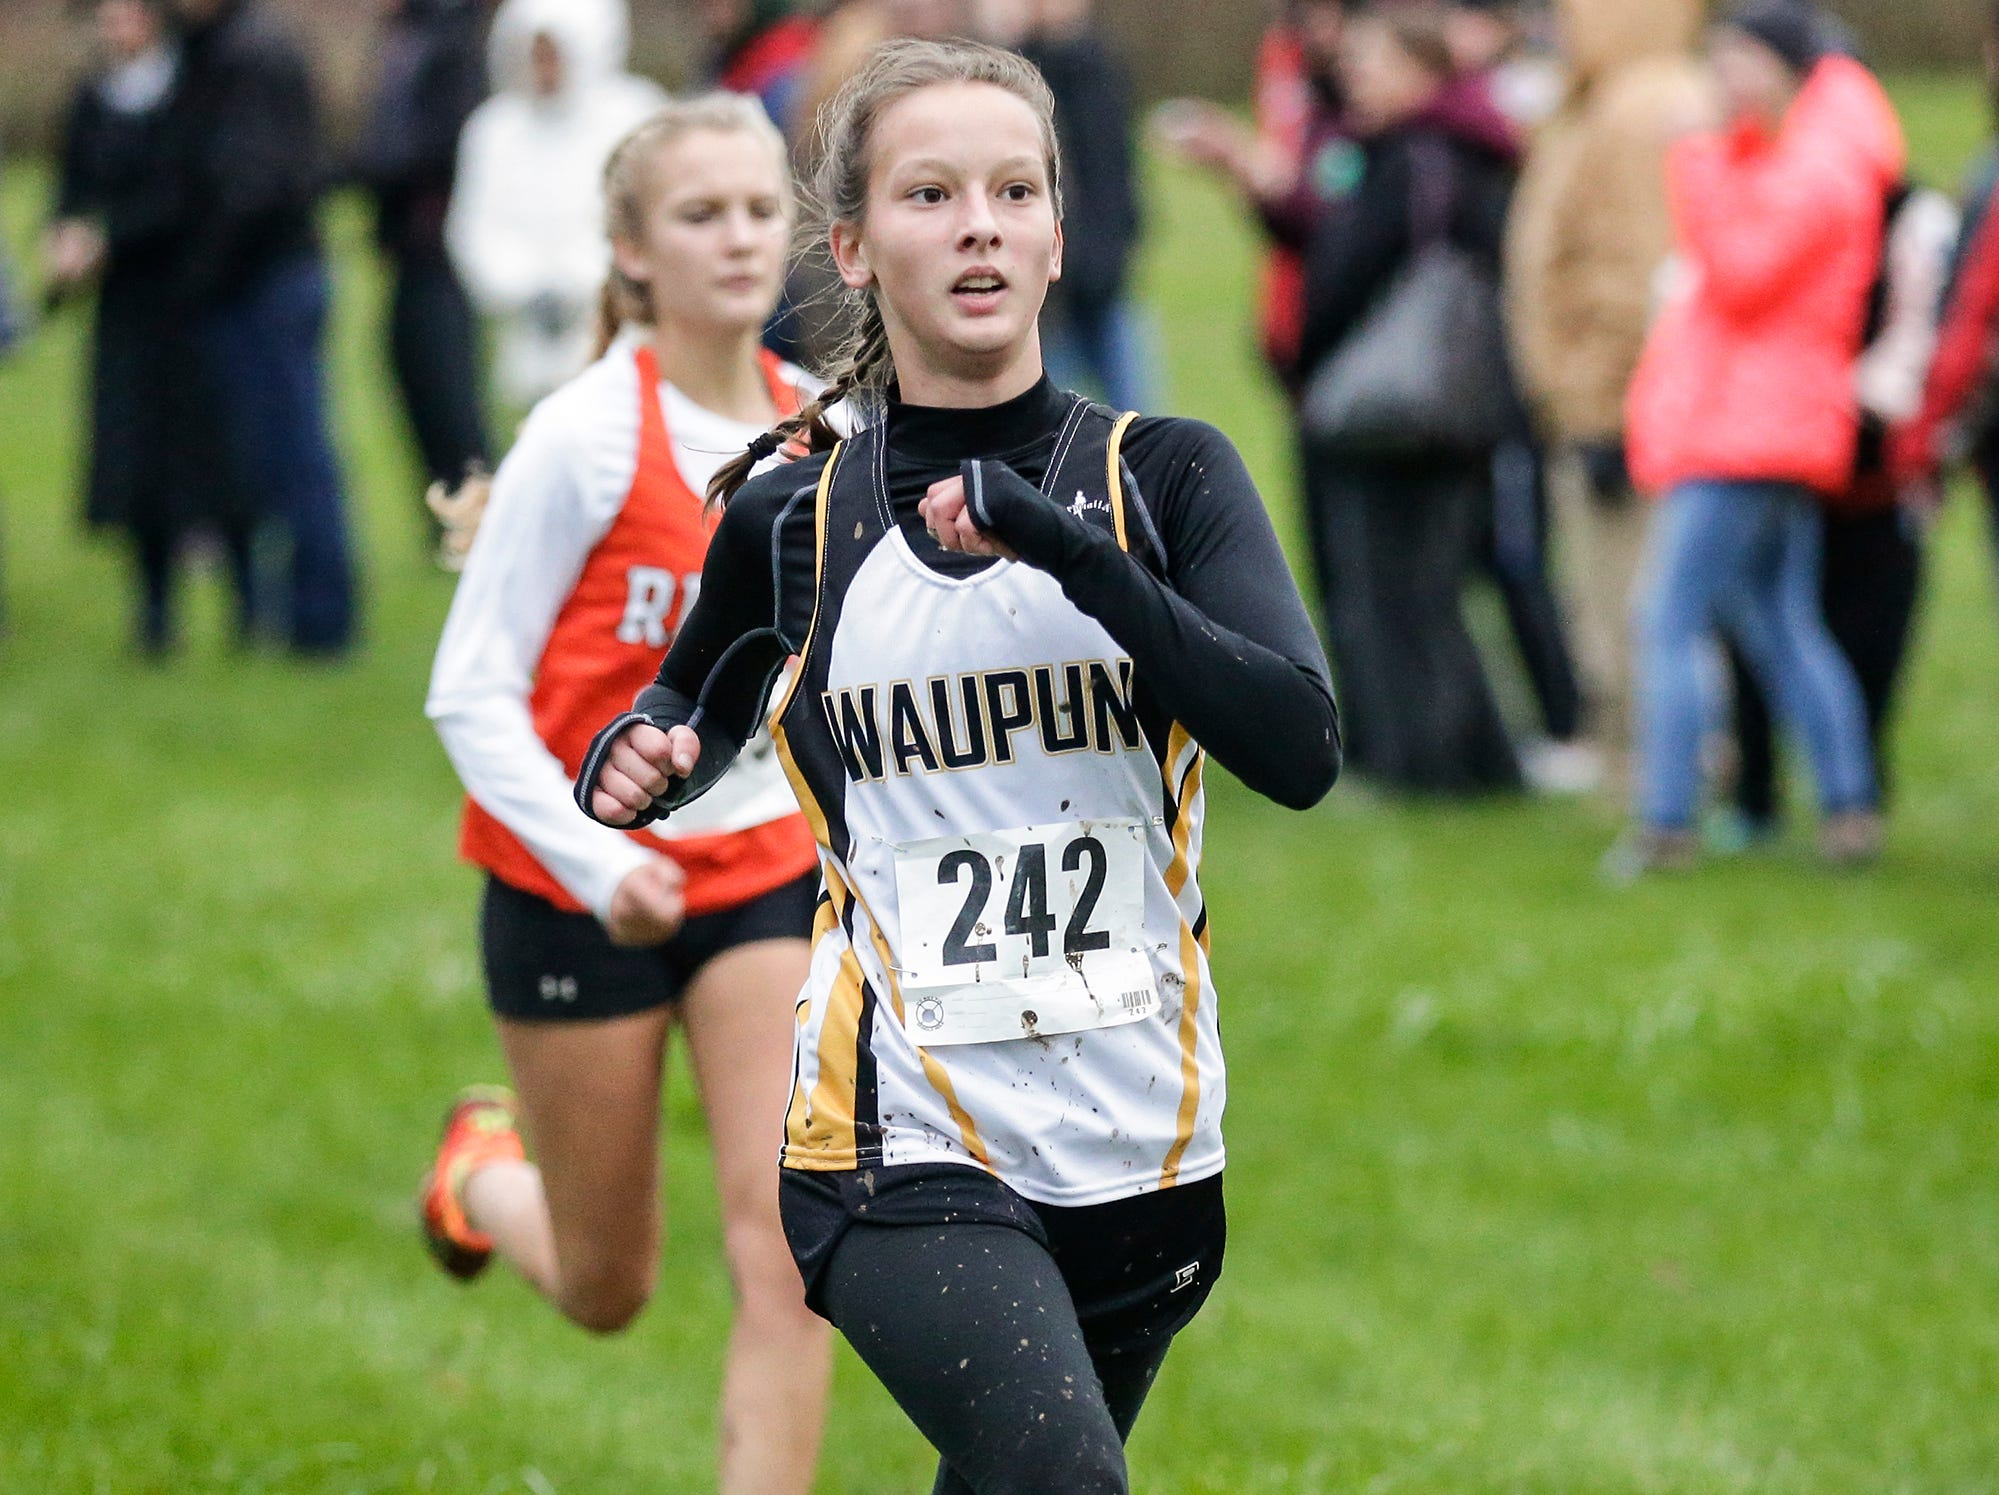 Waupun High School's Maya Bruene runs in the WIAA Division two Mayville sectional cross country meet at the Mayville golf course Friday, October 19, 2018. Doug Raflik/USA TODAY NETWORK-Wisconsin